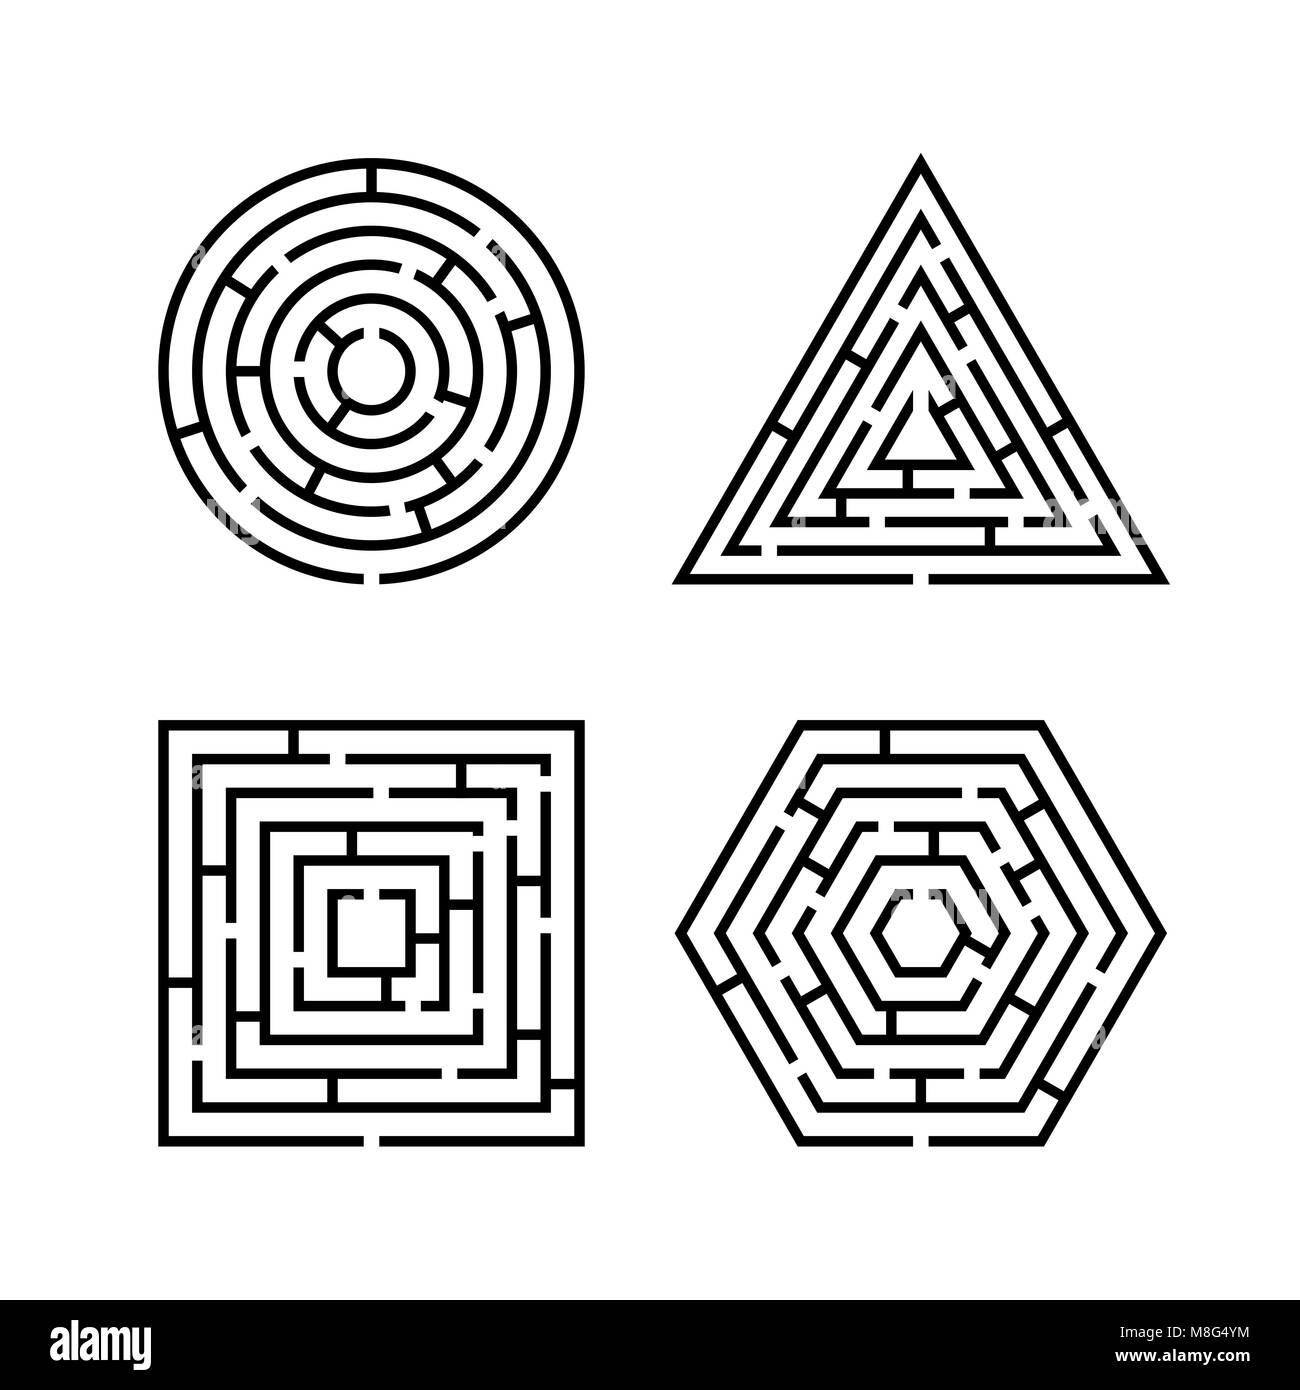 Set of Labyrinth Different Shapes for Game. Maze square, round, hexagon and triangle puzzle riddle logic game concept. Stock Vector